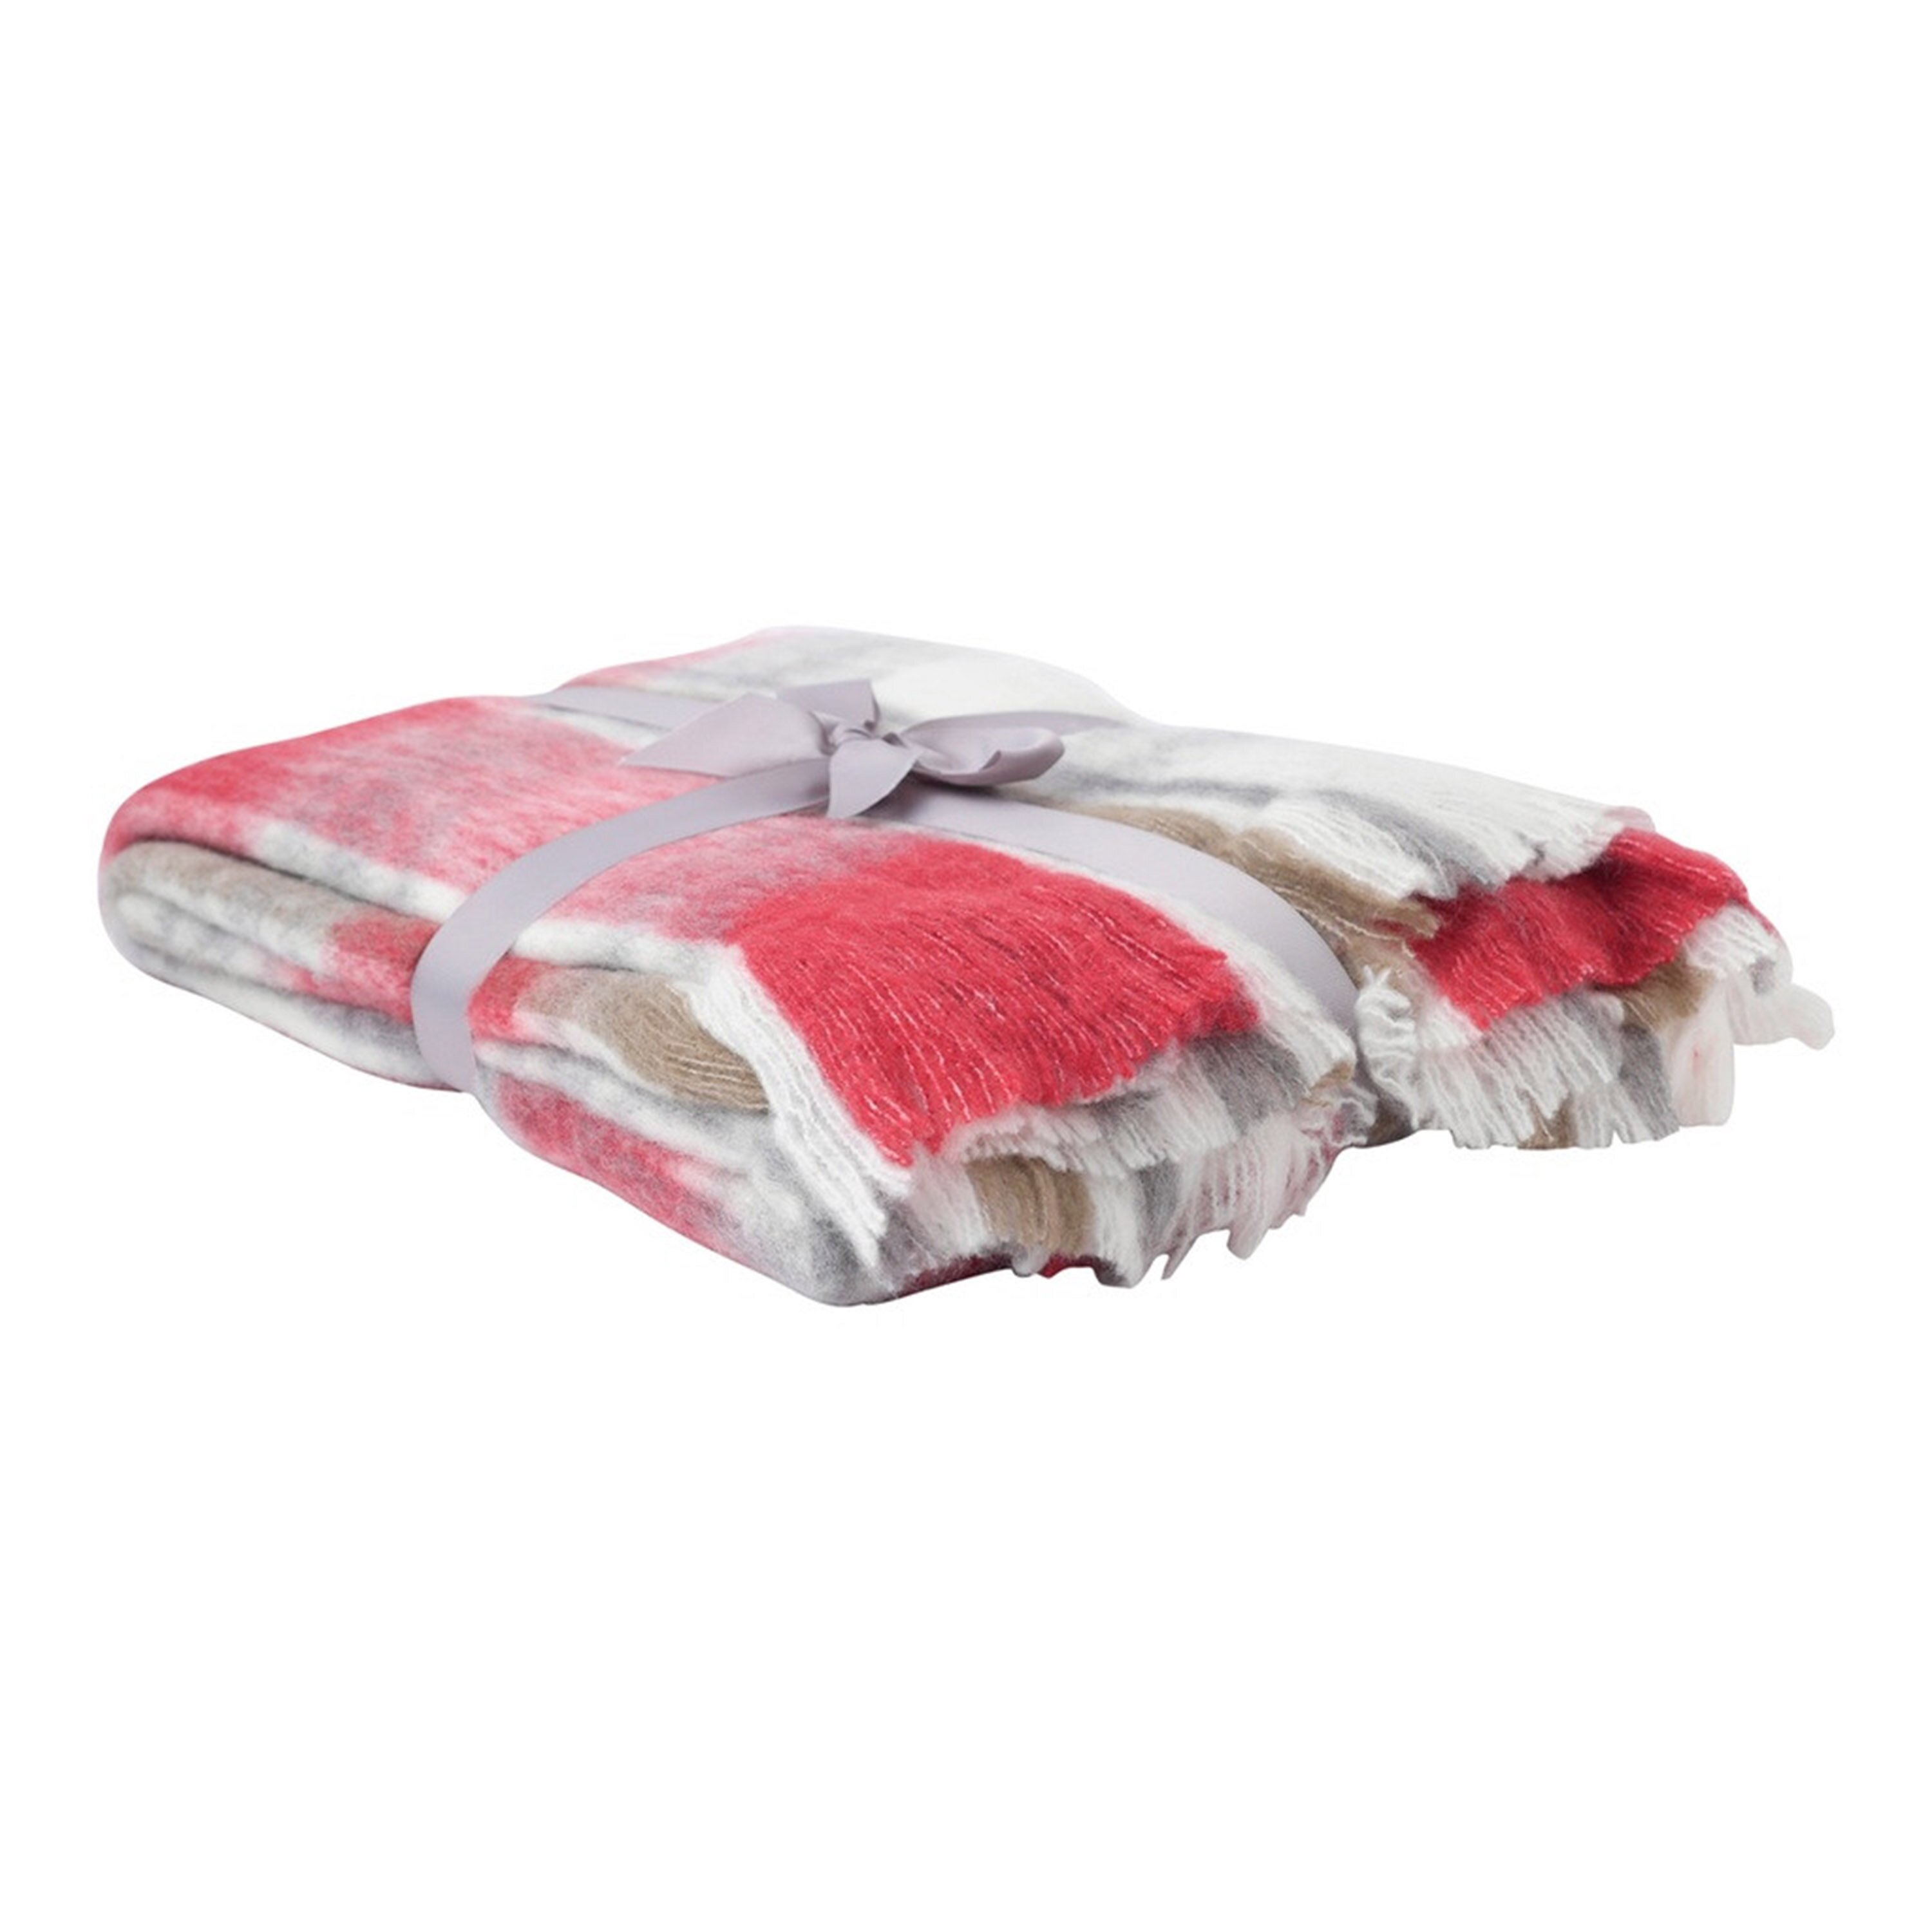 Hallmark home gifts holiday soft throw blanket reviews for Soft blankets and throws